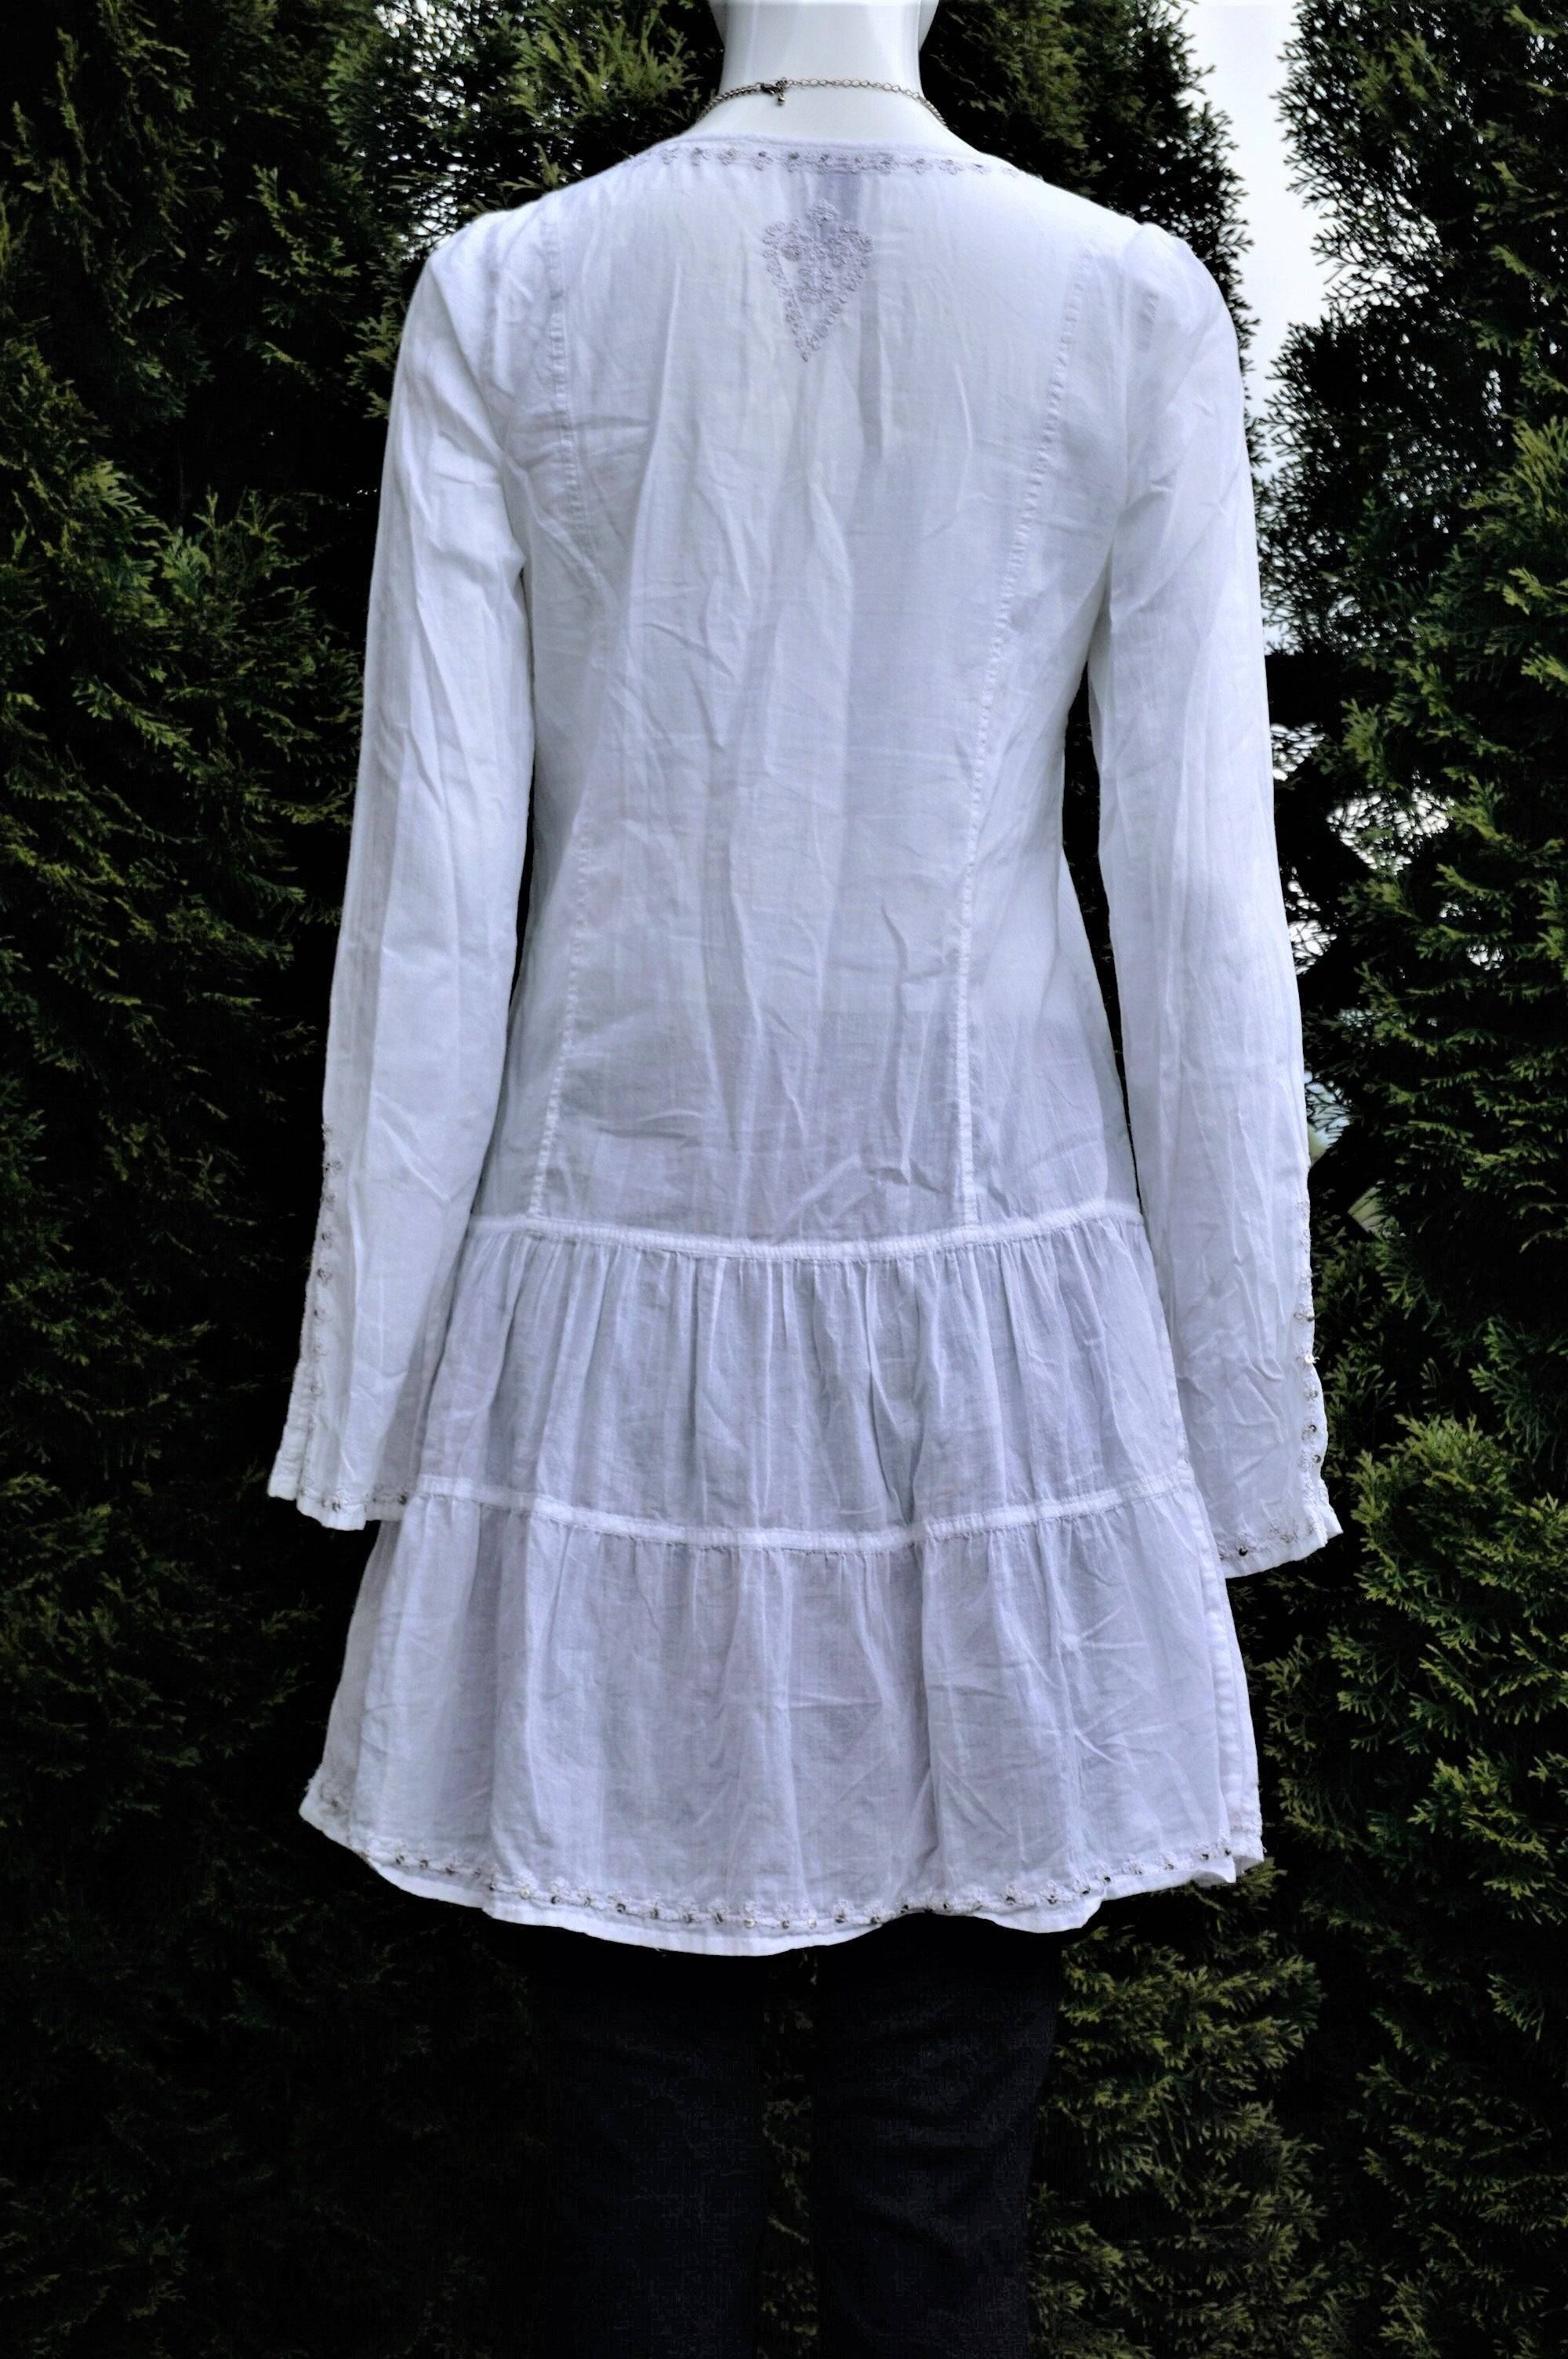 Lucky Brand Embroidered White Shift Dress, Simple at first glance, beautiful Embroidered details when you look closer. Light shift dress perfect for the summer., White, 100% Cotton, women's Dresses & Rompers, women's White Dresses & Rompers, Lucky Brand women's Dresses & Rompers, shift dress, white long sleeve dress, summer dress